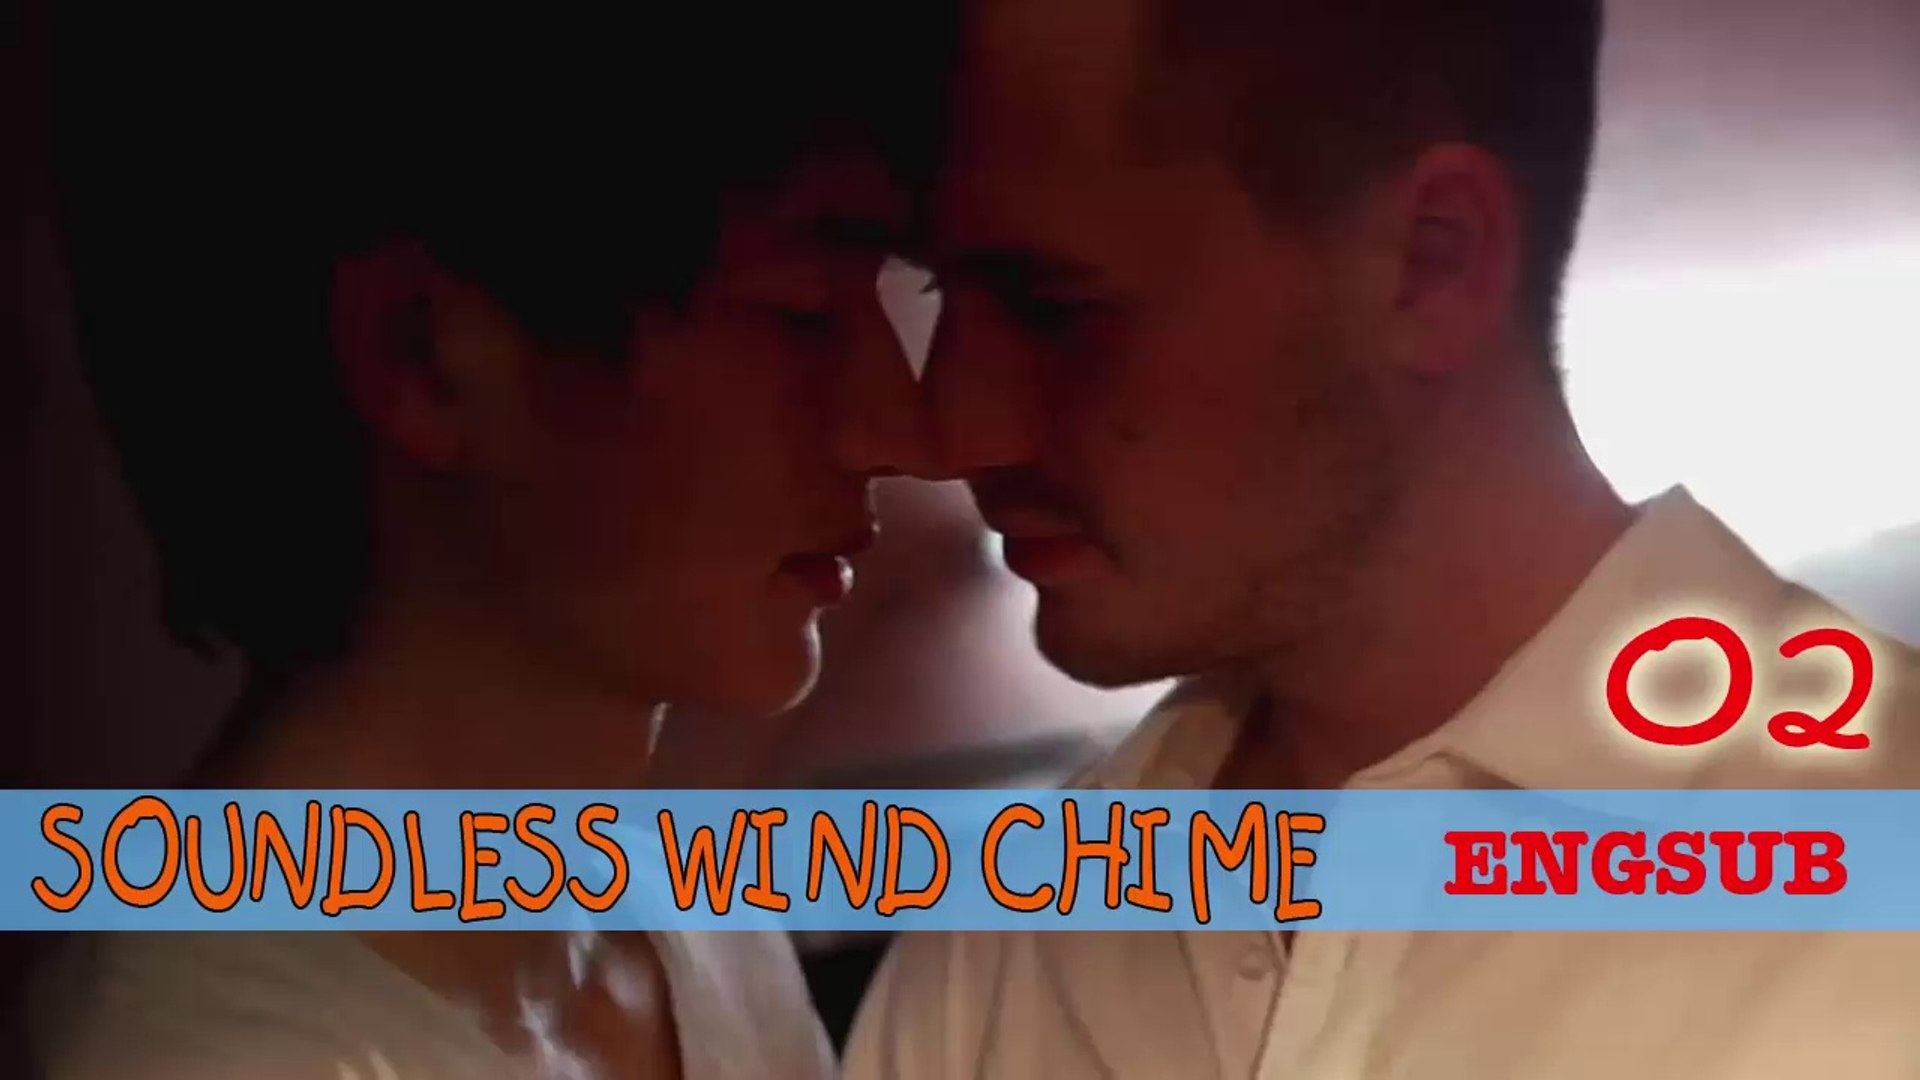 ENGSUB 02 - Soundless Wind Chime